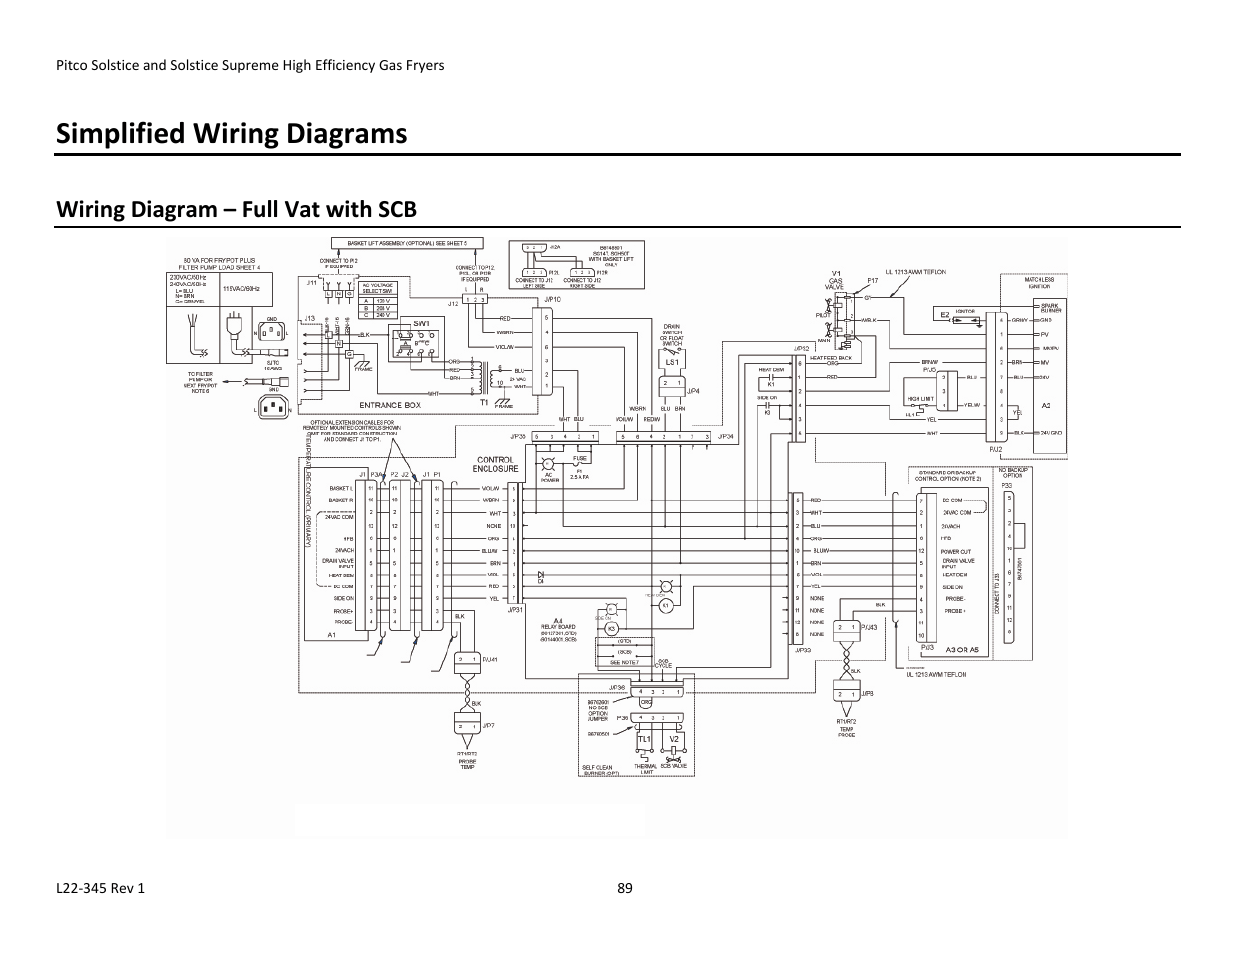 Simplified Wiring Diagrams Wiring Diagram Full Vat With